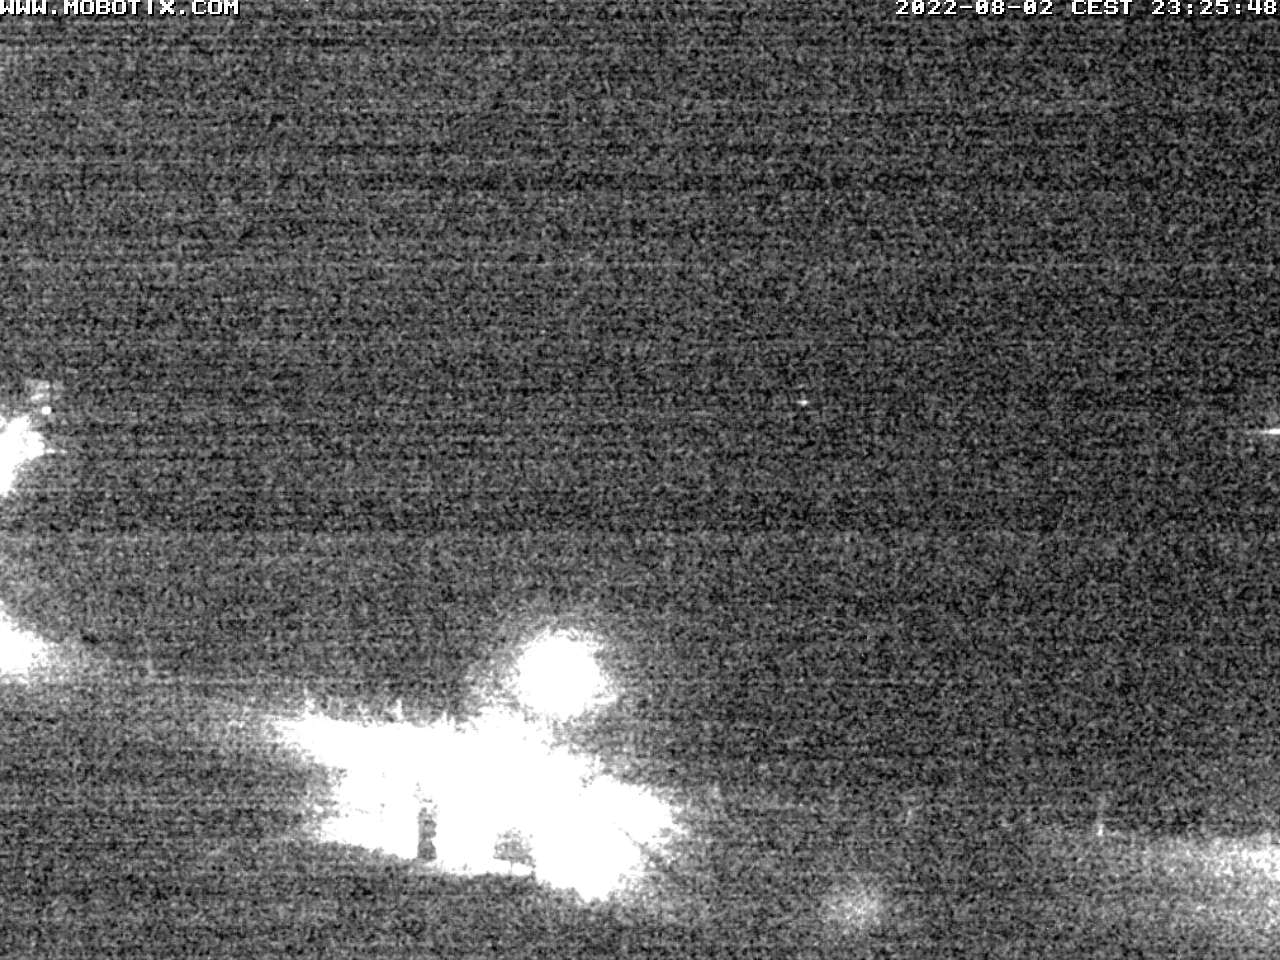 World Champion Top Alpin Wlachhofer Ski School webcam Zauchensee